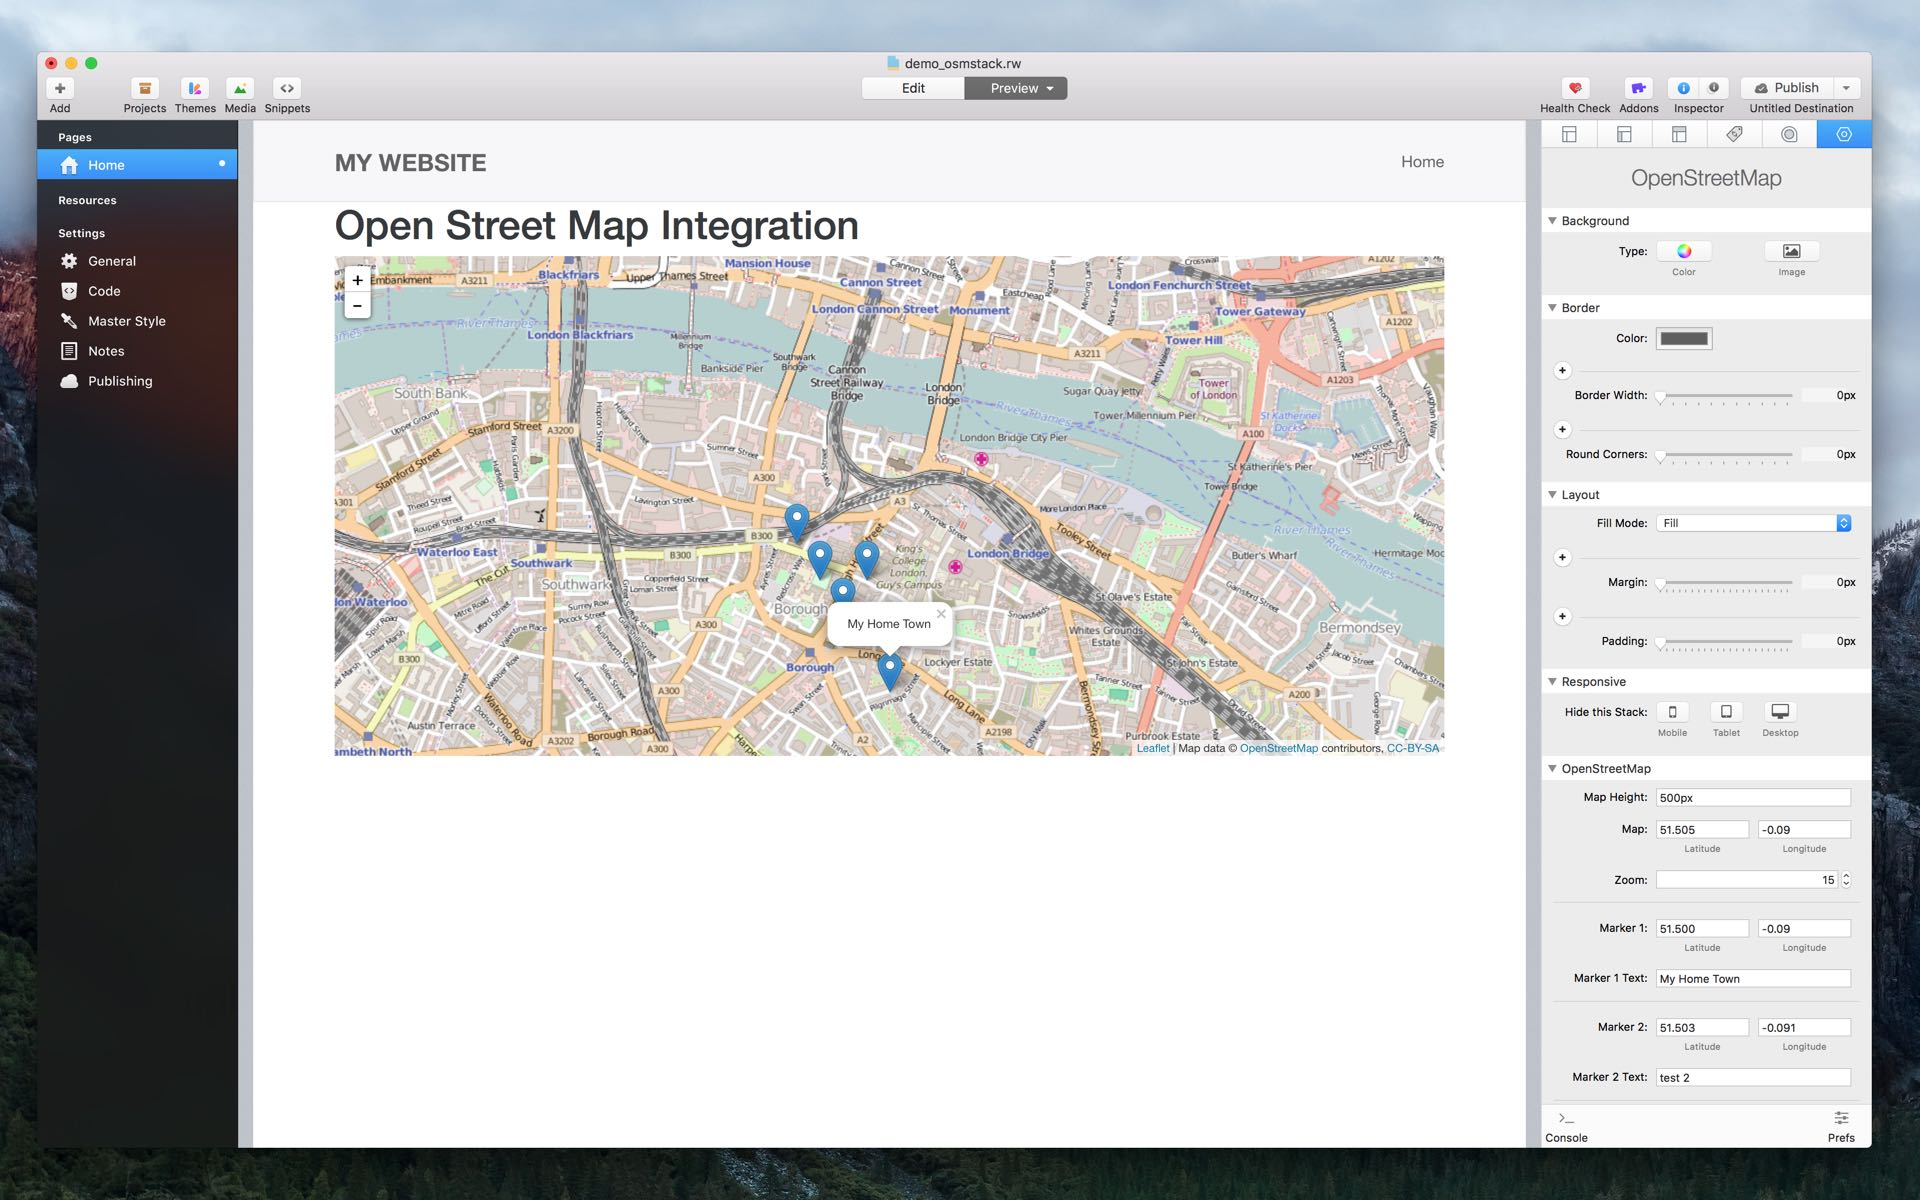 inStacks Software | OpenStreetMap Stack - Integrate Free